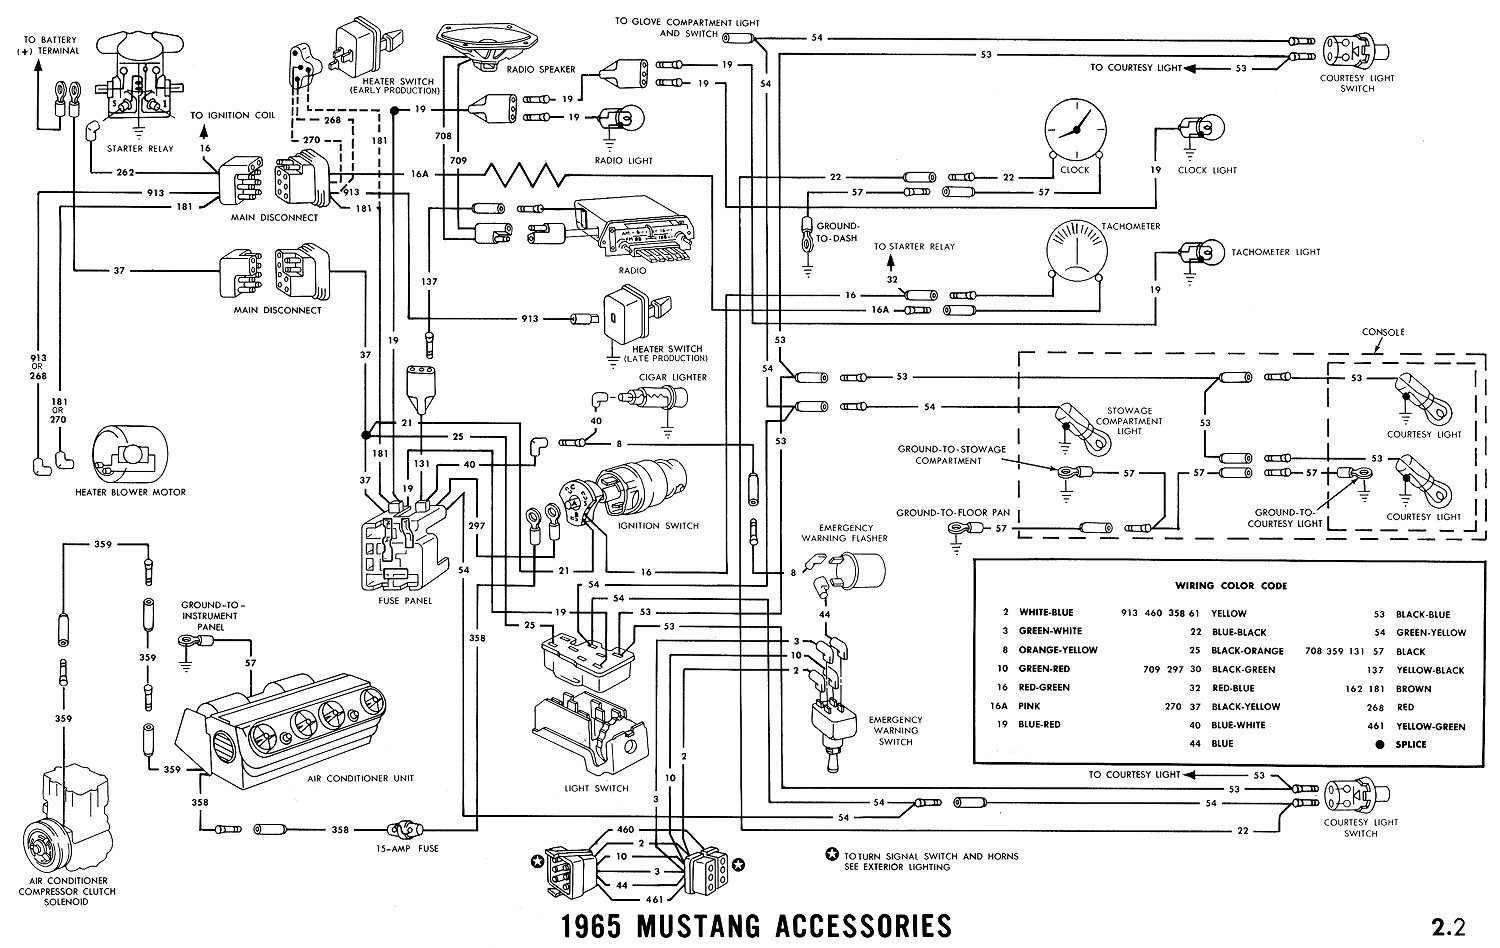 Wiring Diagram For 1965 Mustang